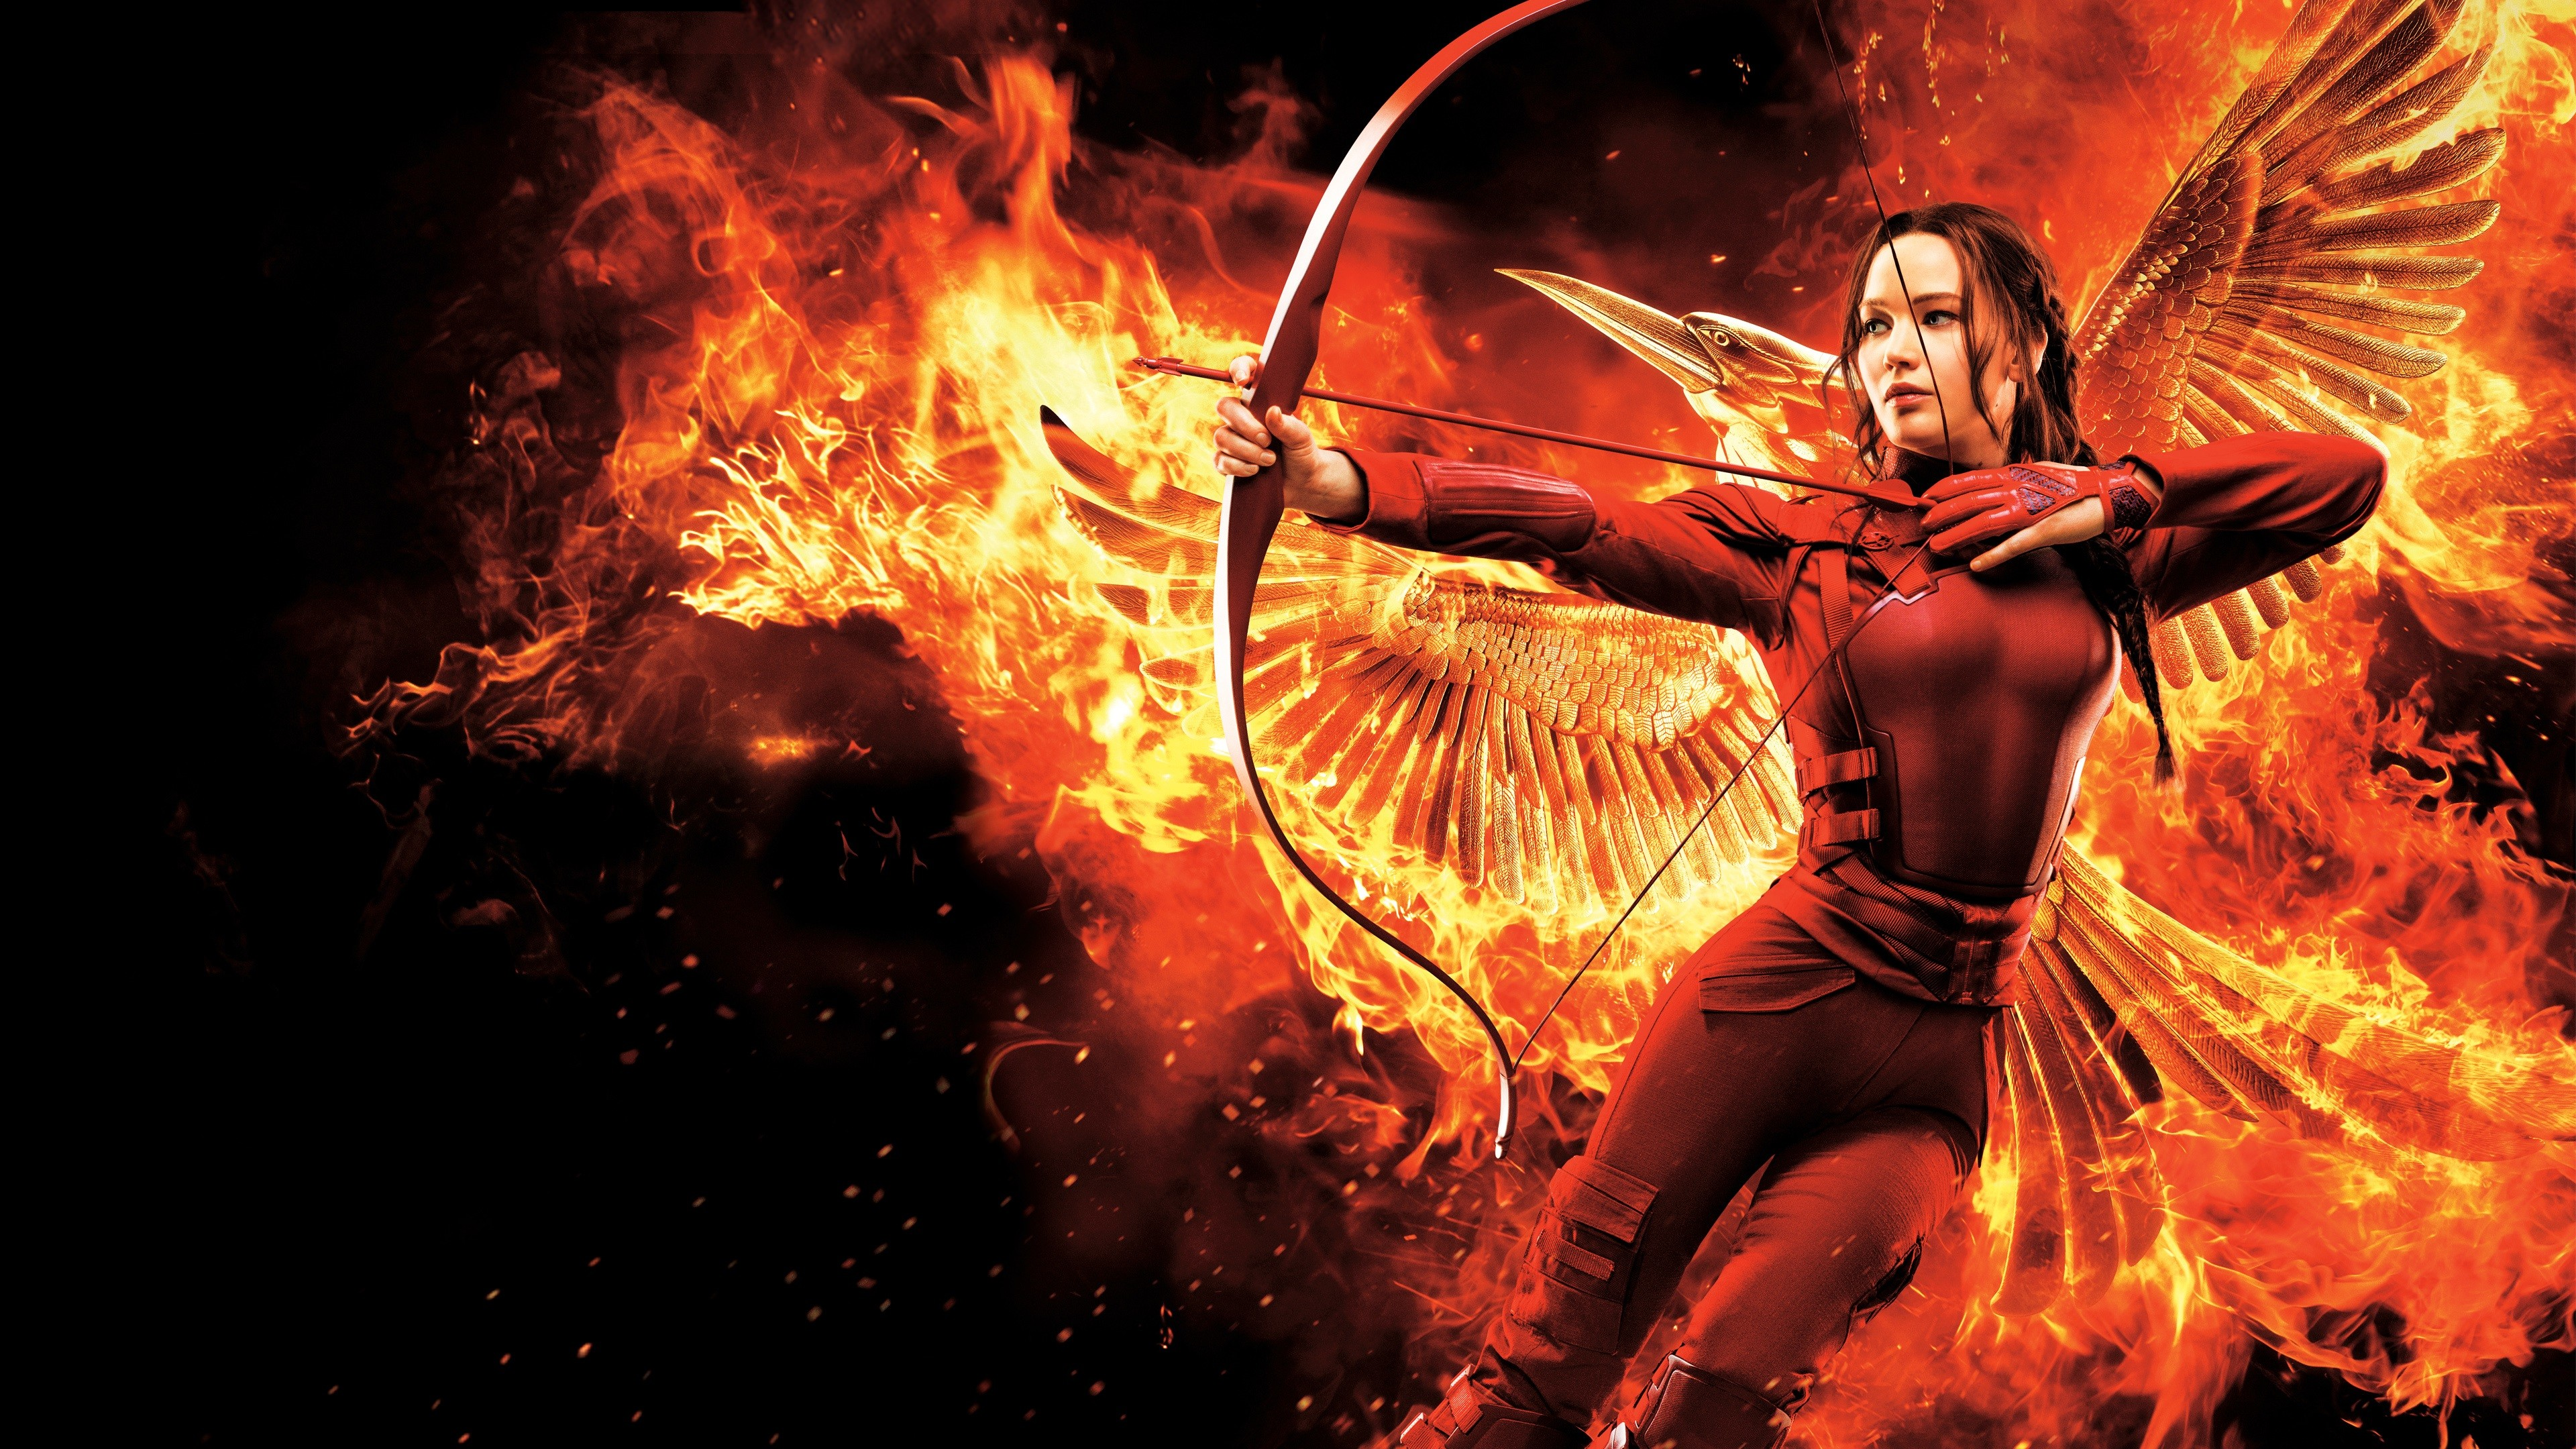 3840x2160 The Hunger Games: Mockingjay - Part 2 4k Ultra HD Wallpaper | Background  Image |  | ID:688145 - Wallpaper Abyss